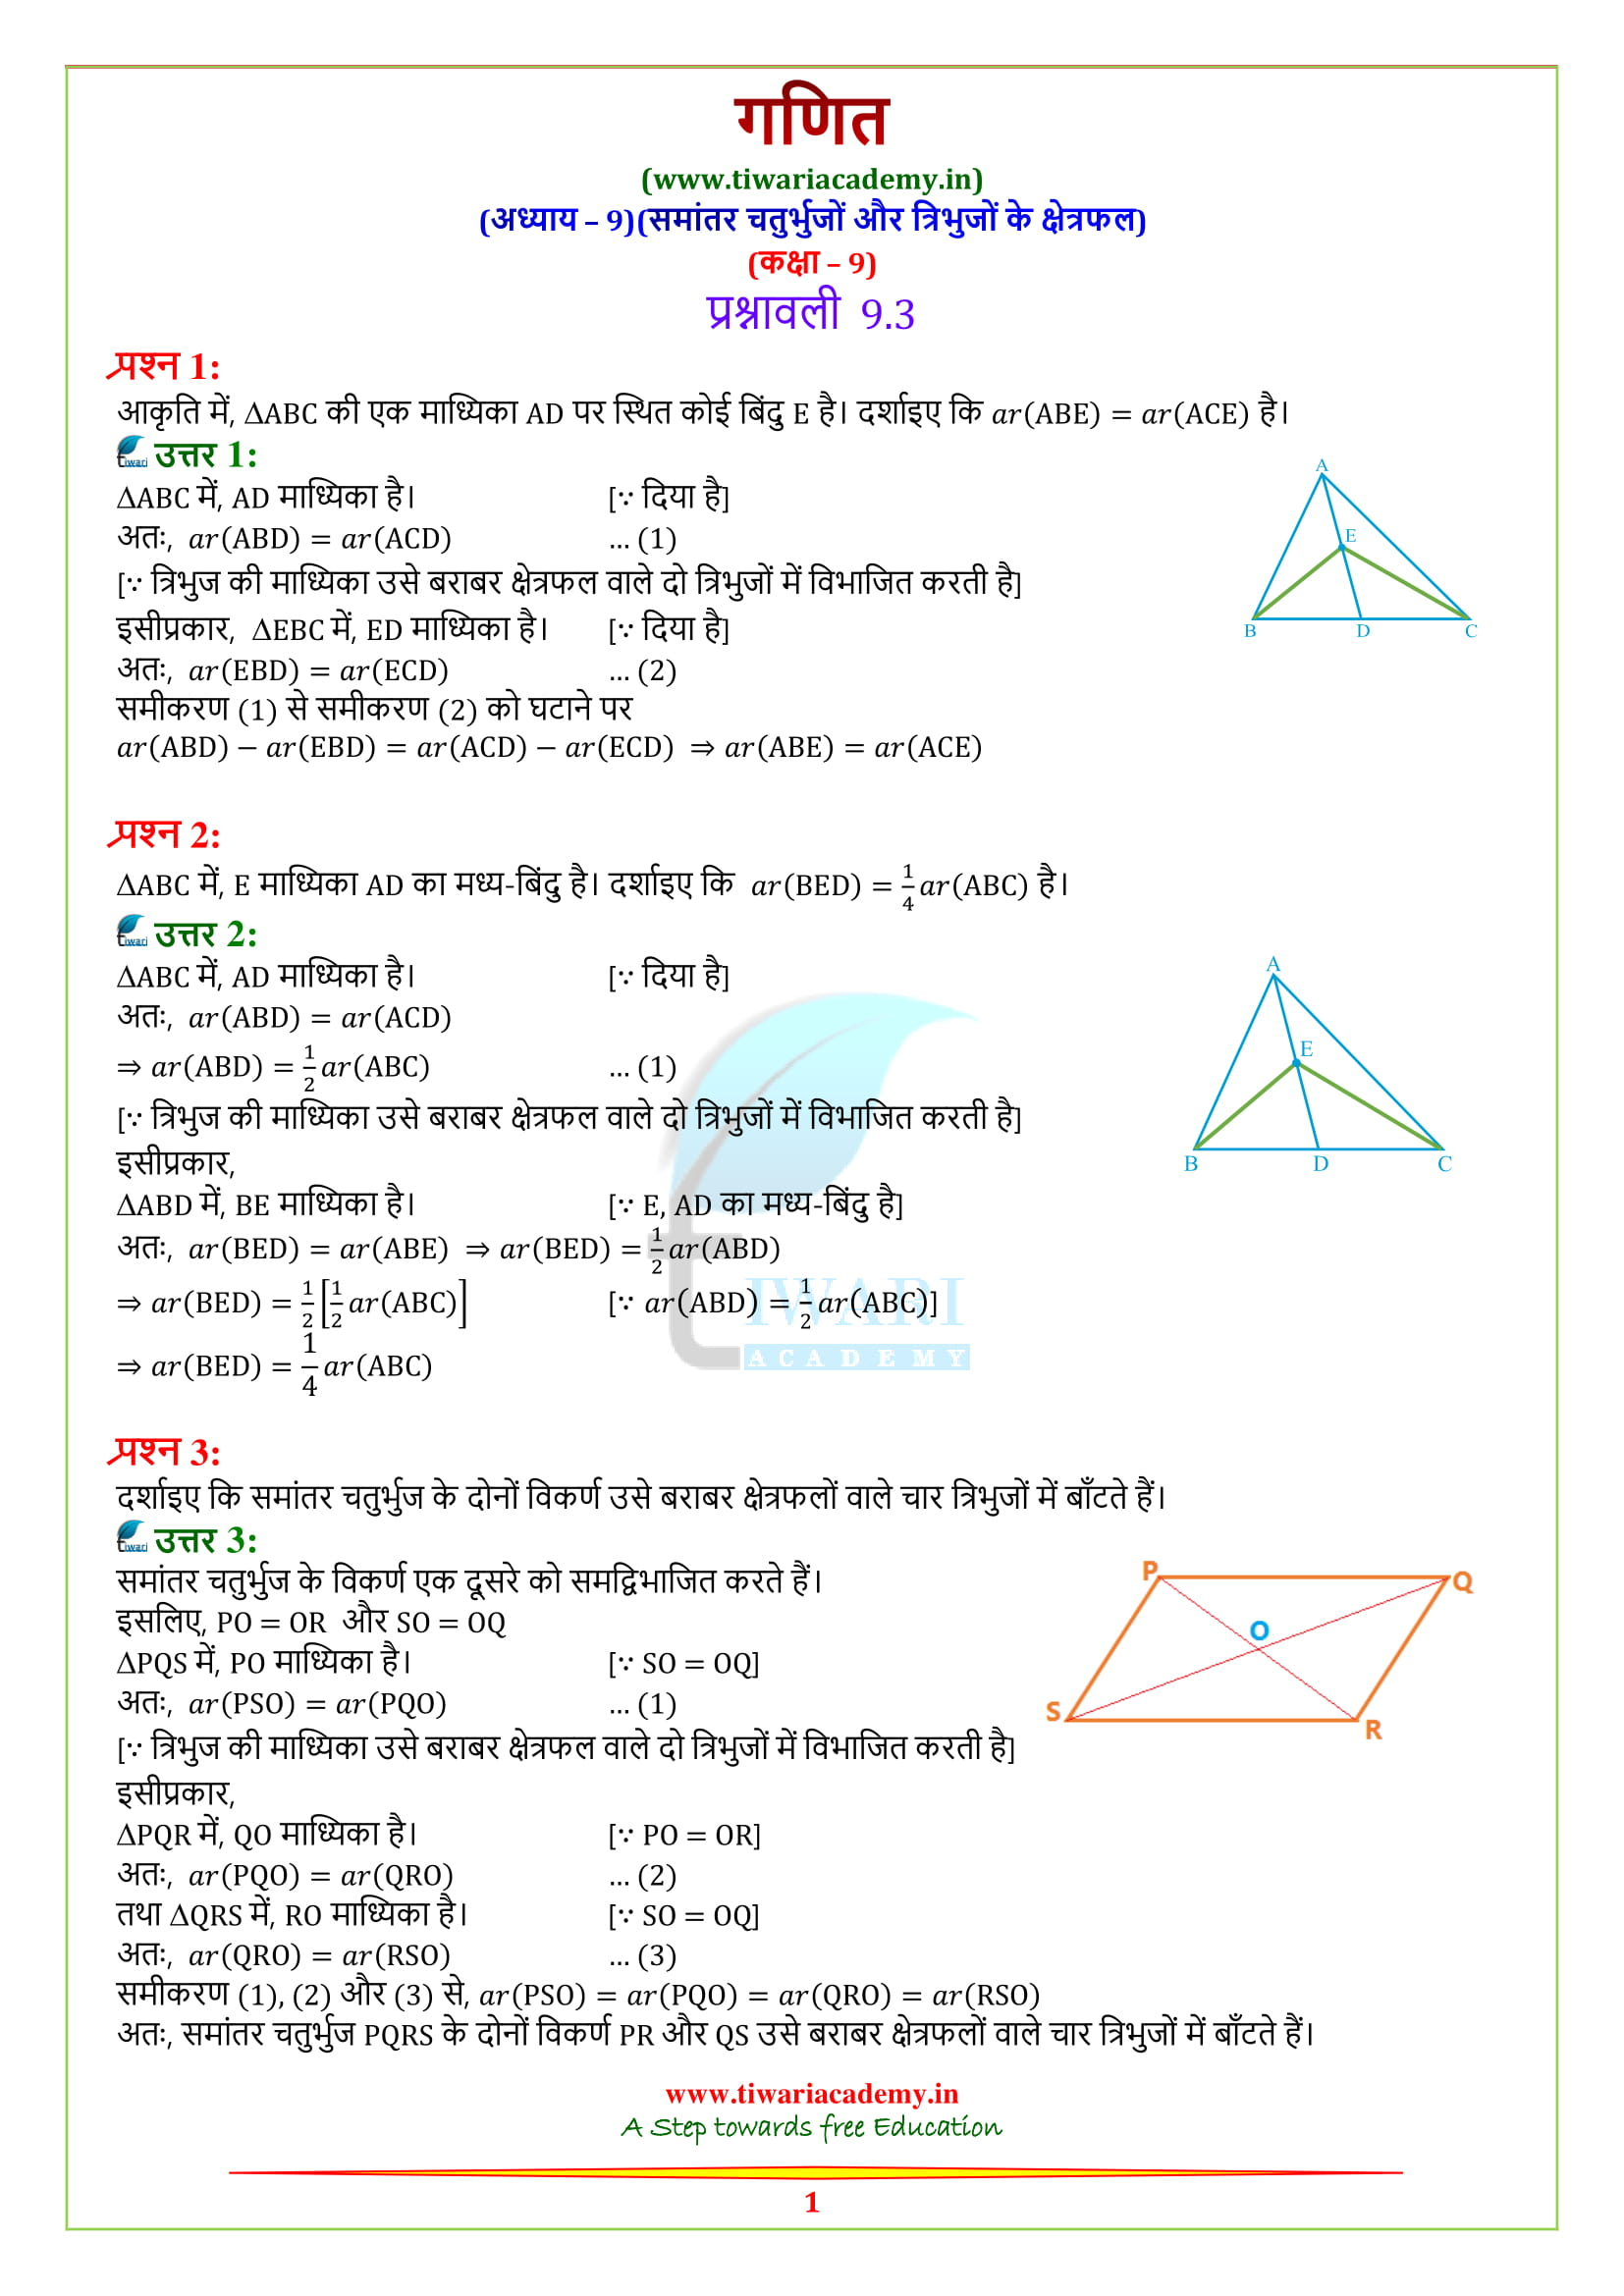 9 Maths Exercise 9.3 solutons all question answers guide